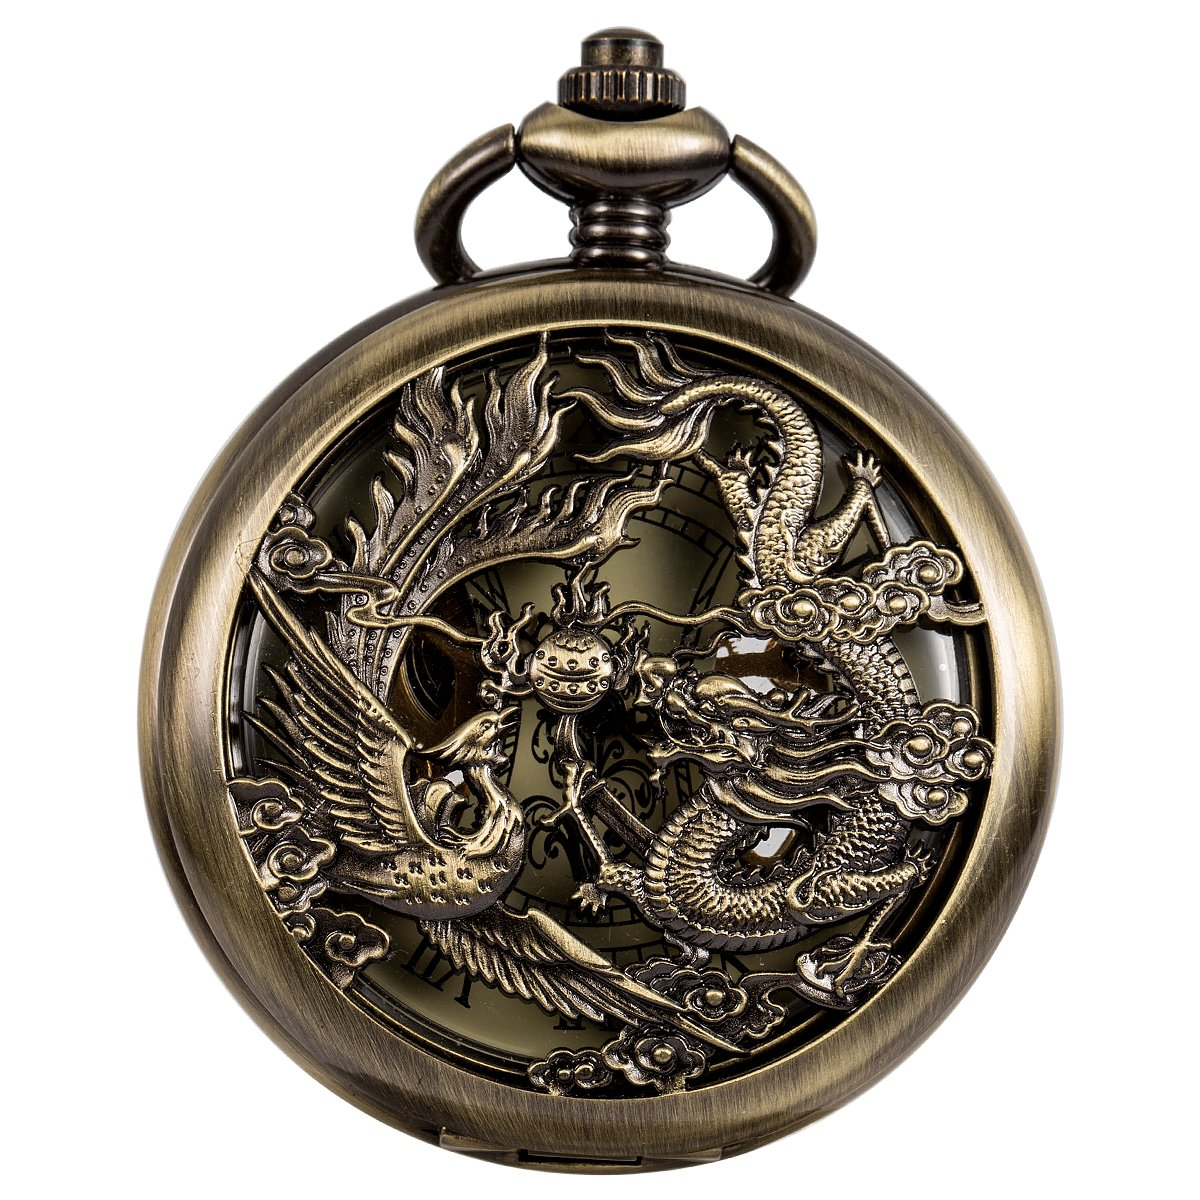 SIBOSUN Mechanical Pocket Watches Mens, Lucky Phoenix and Dragon, Skeleton Pocket Watch, Black Antique Roman Numerals with Gift Box (Bronze) by SIBOSUN